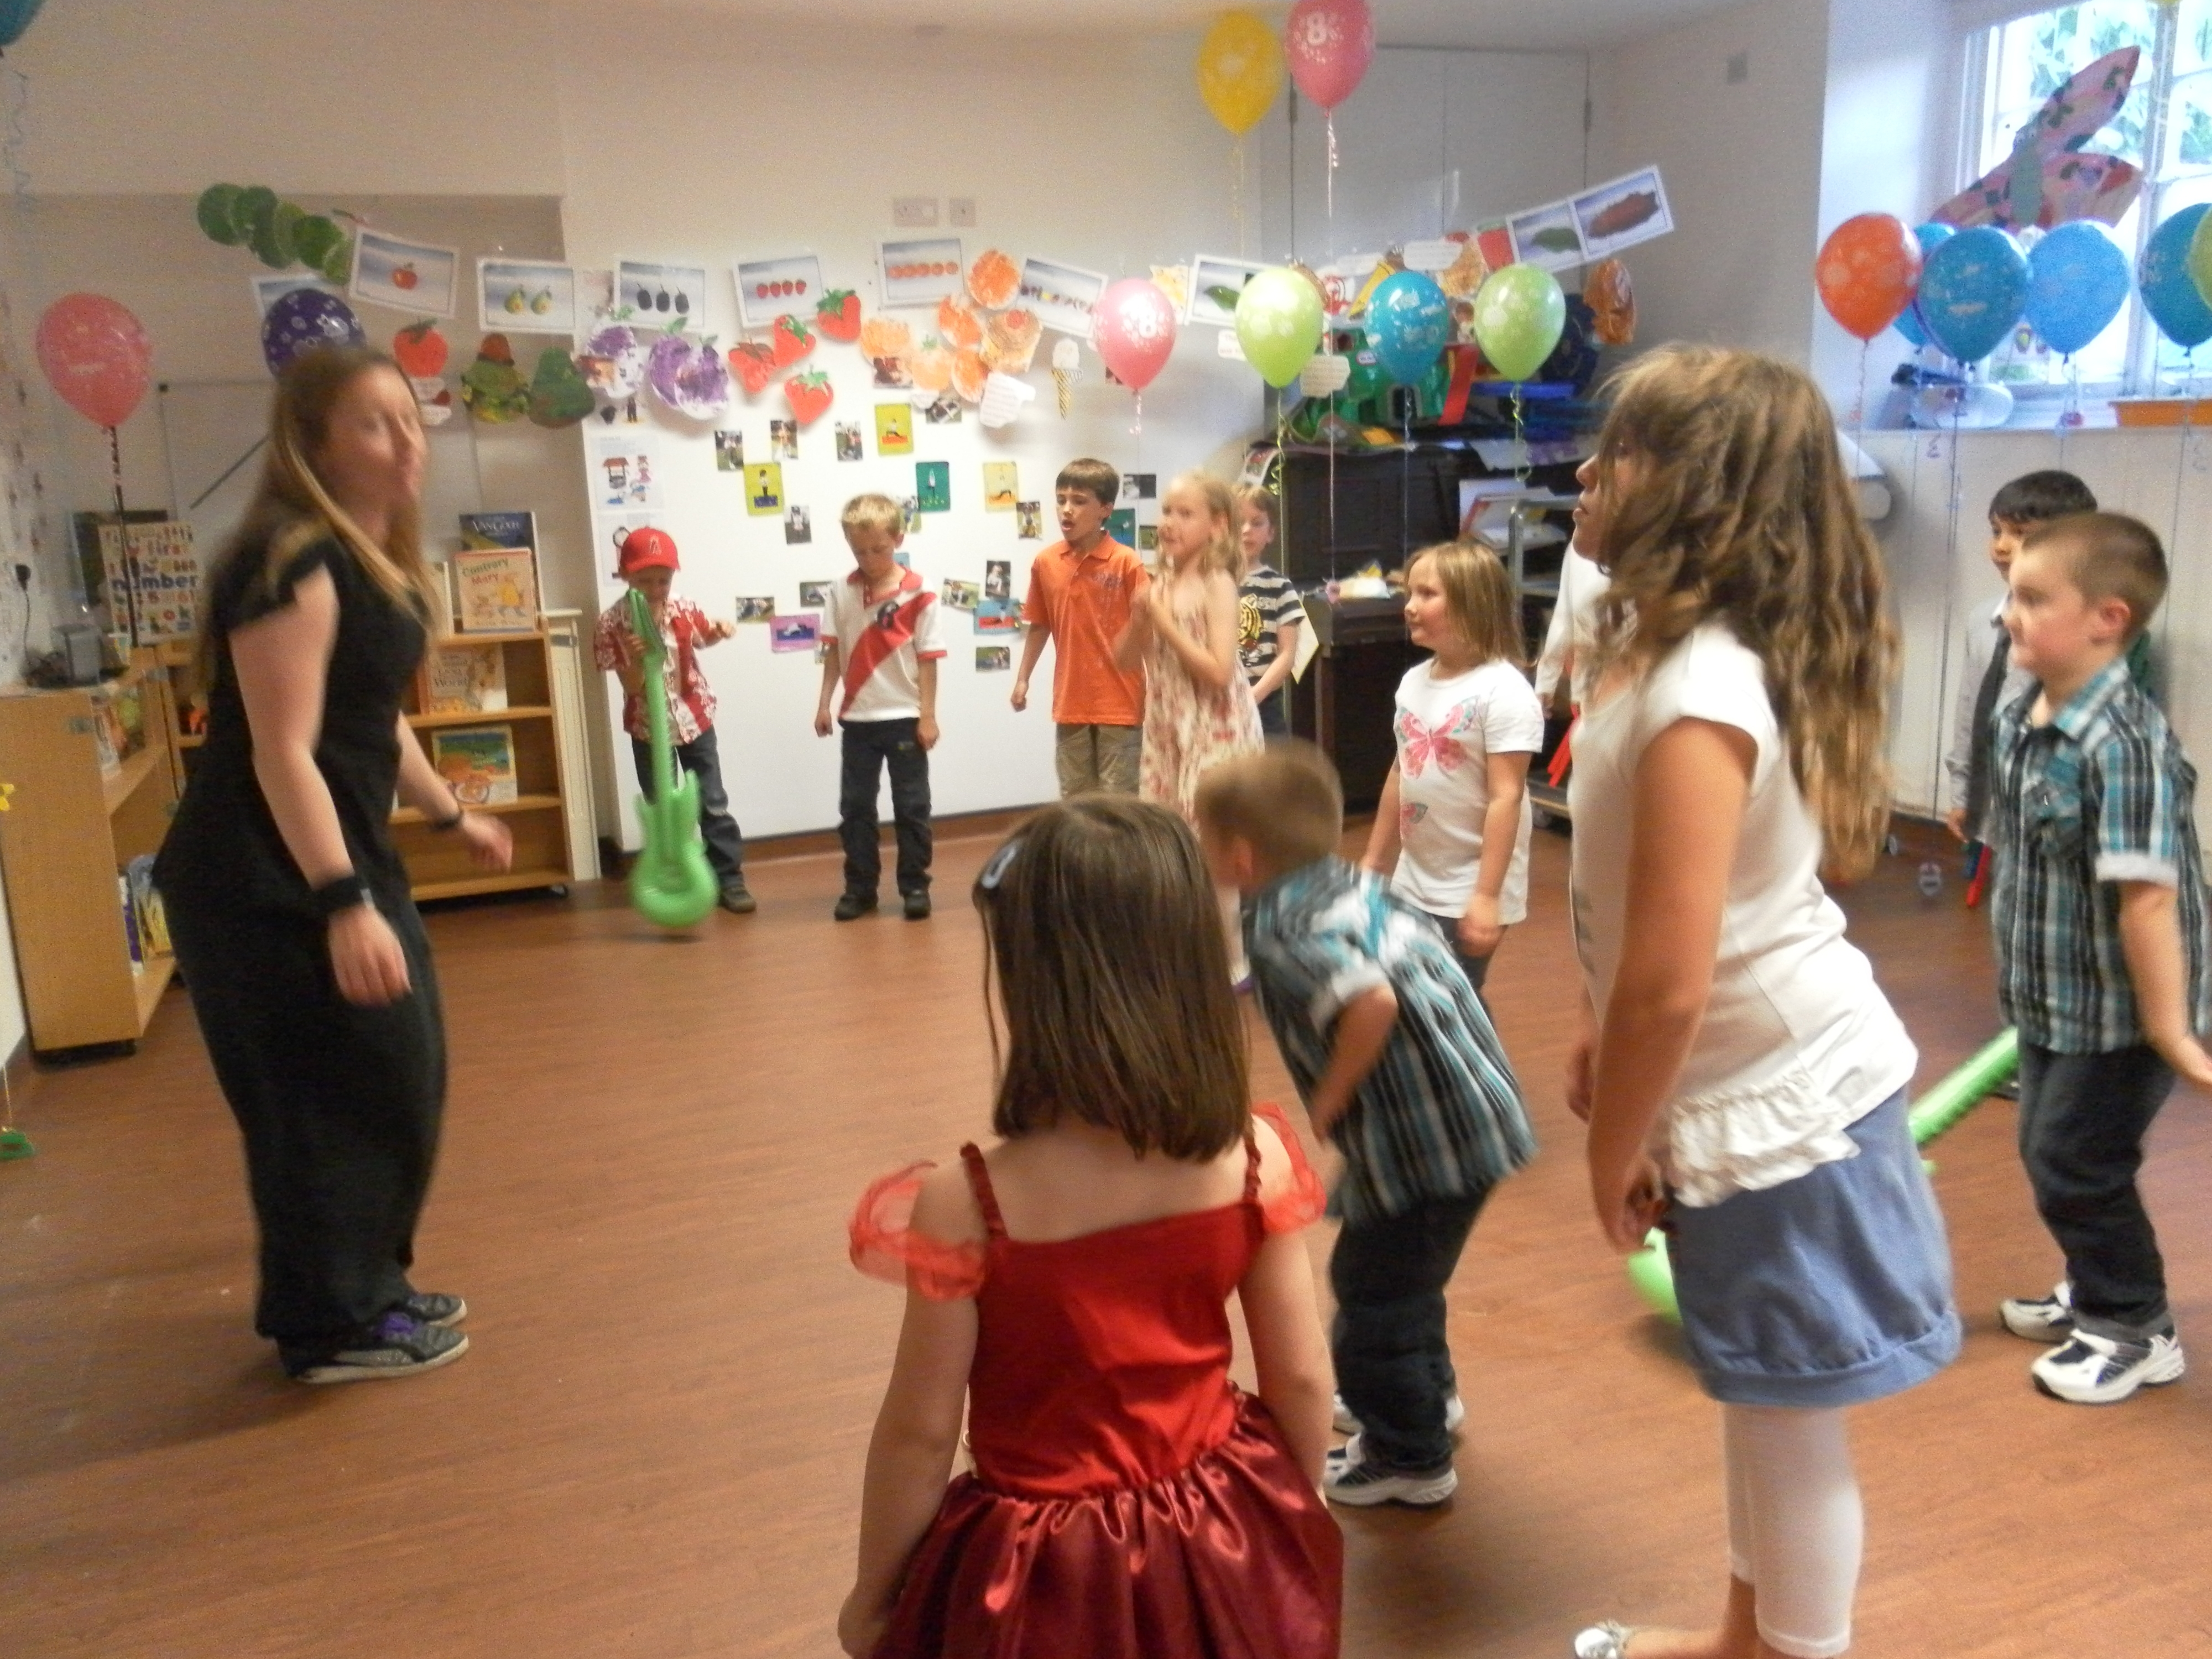 Children's Hip hop Dance Party